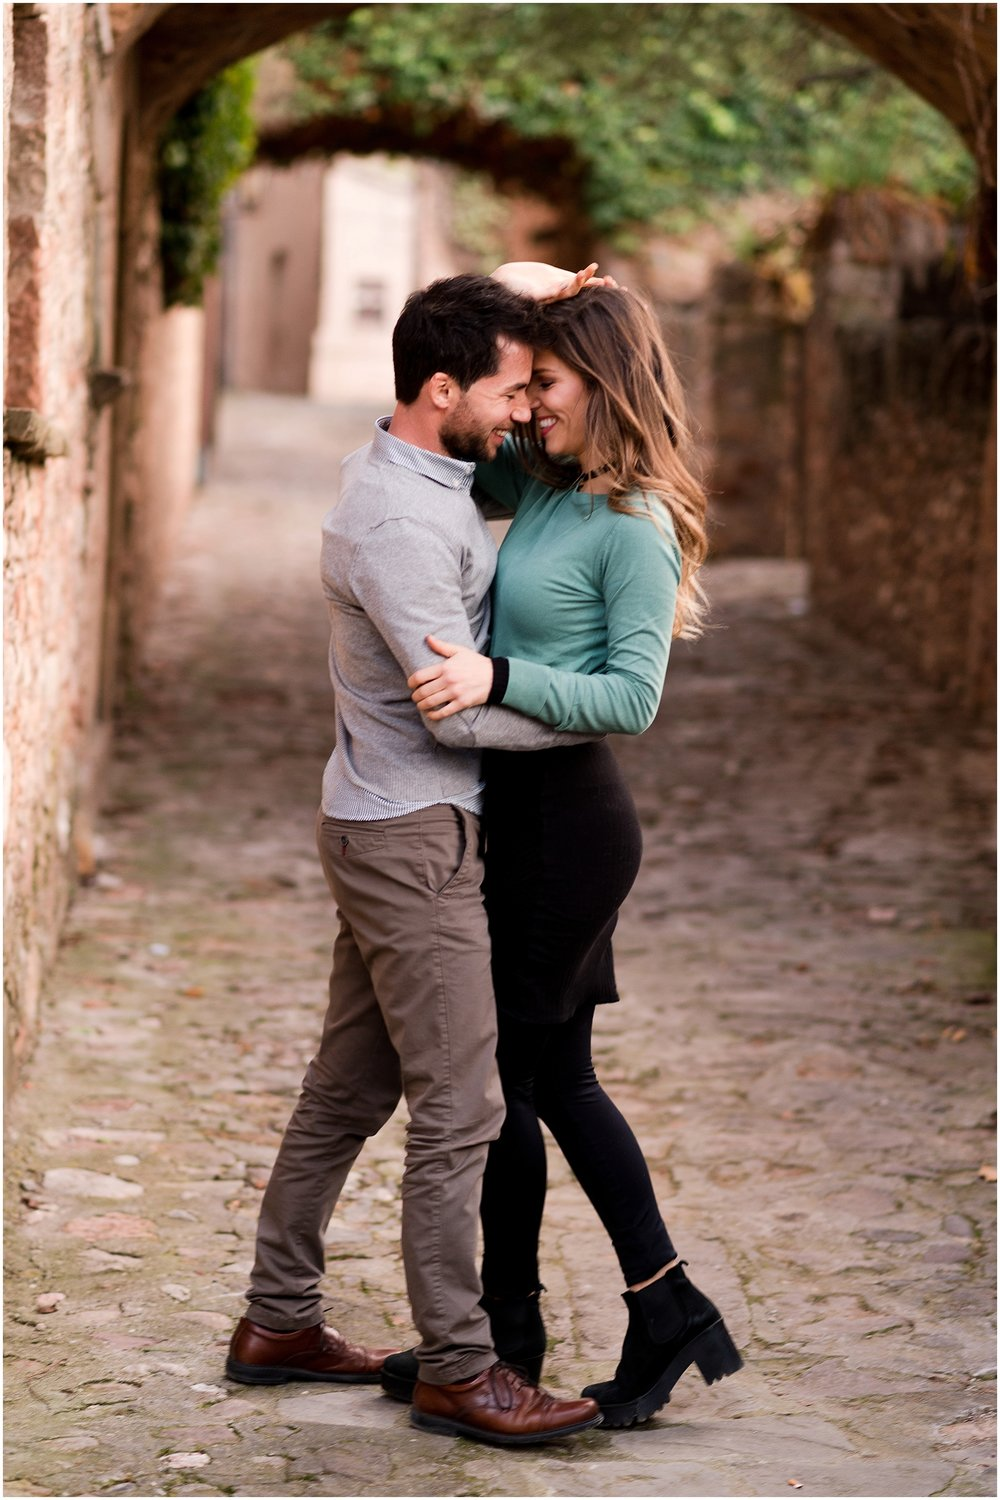 Hannah Leigh Photography Barcelona Spain Engagement Session_3282.jpg